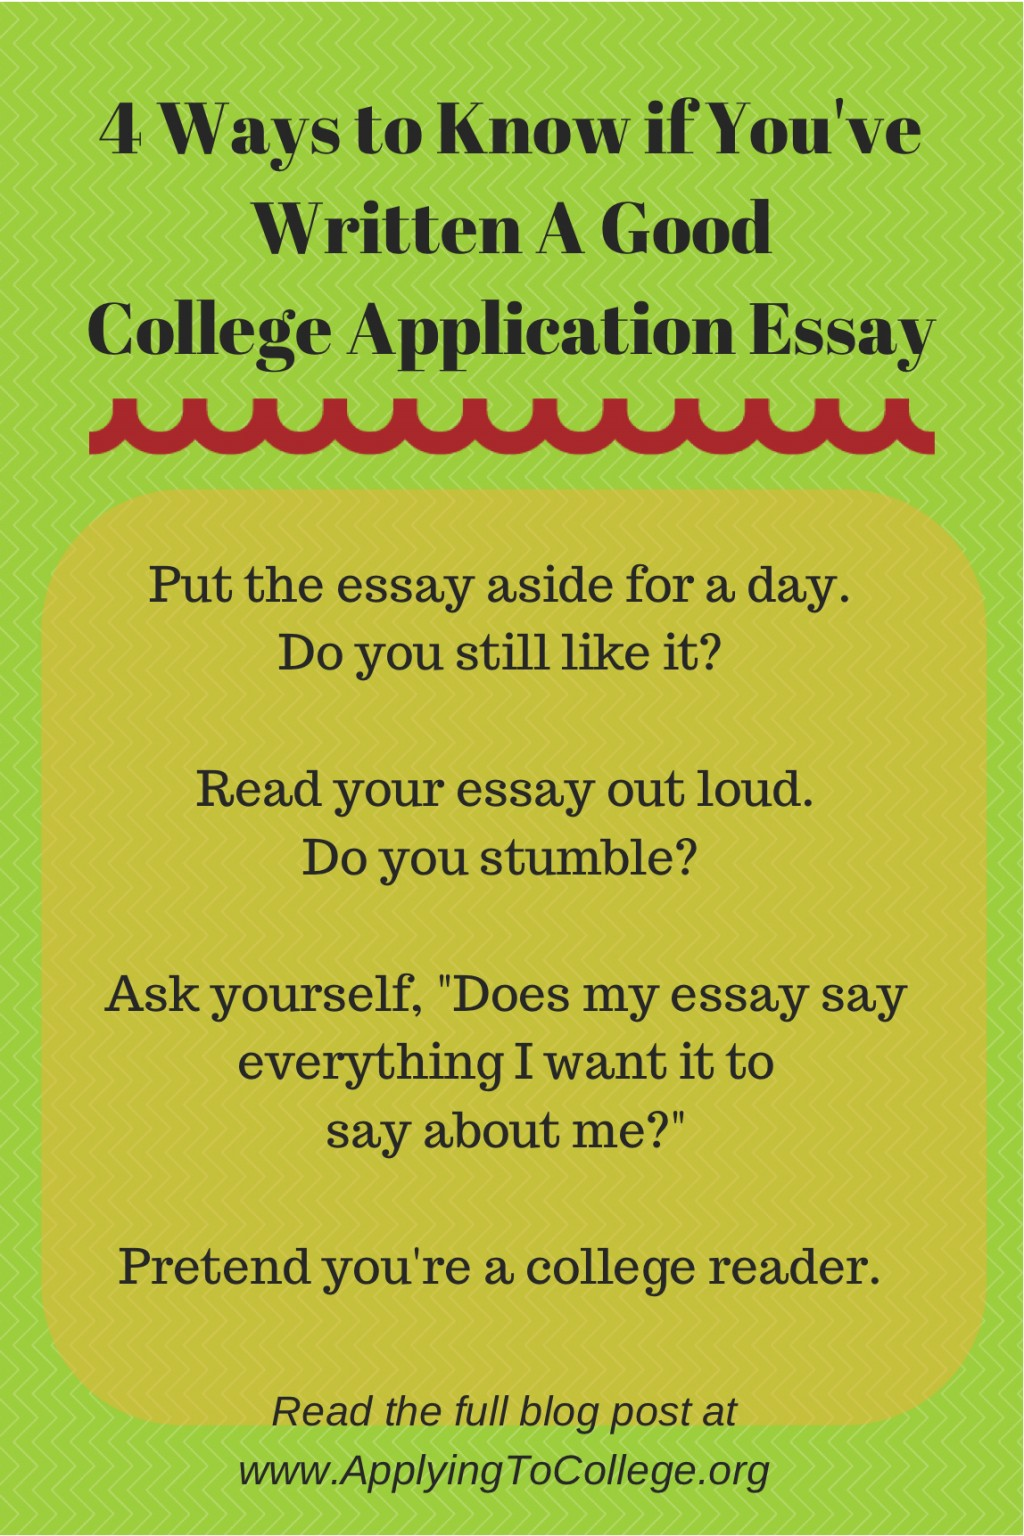 015 Essay Example Read My To Me 4ways Know If Youve Written Unique And Tell It's Good Large